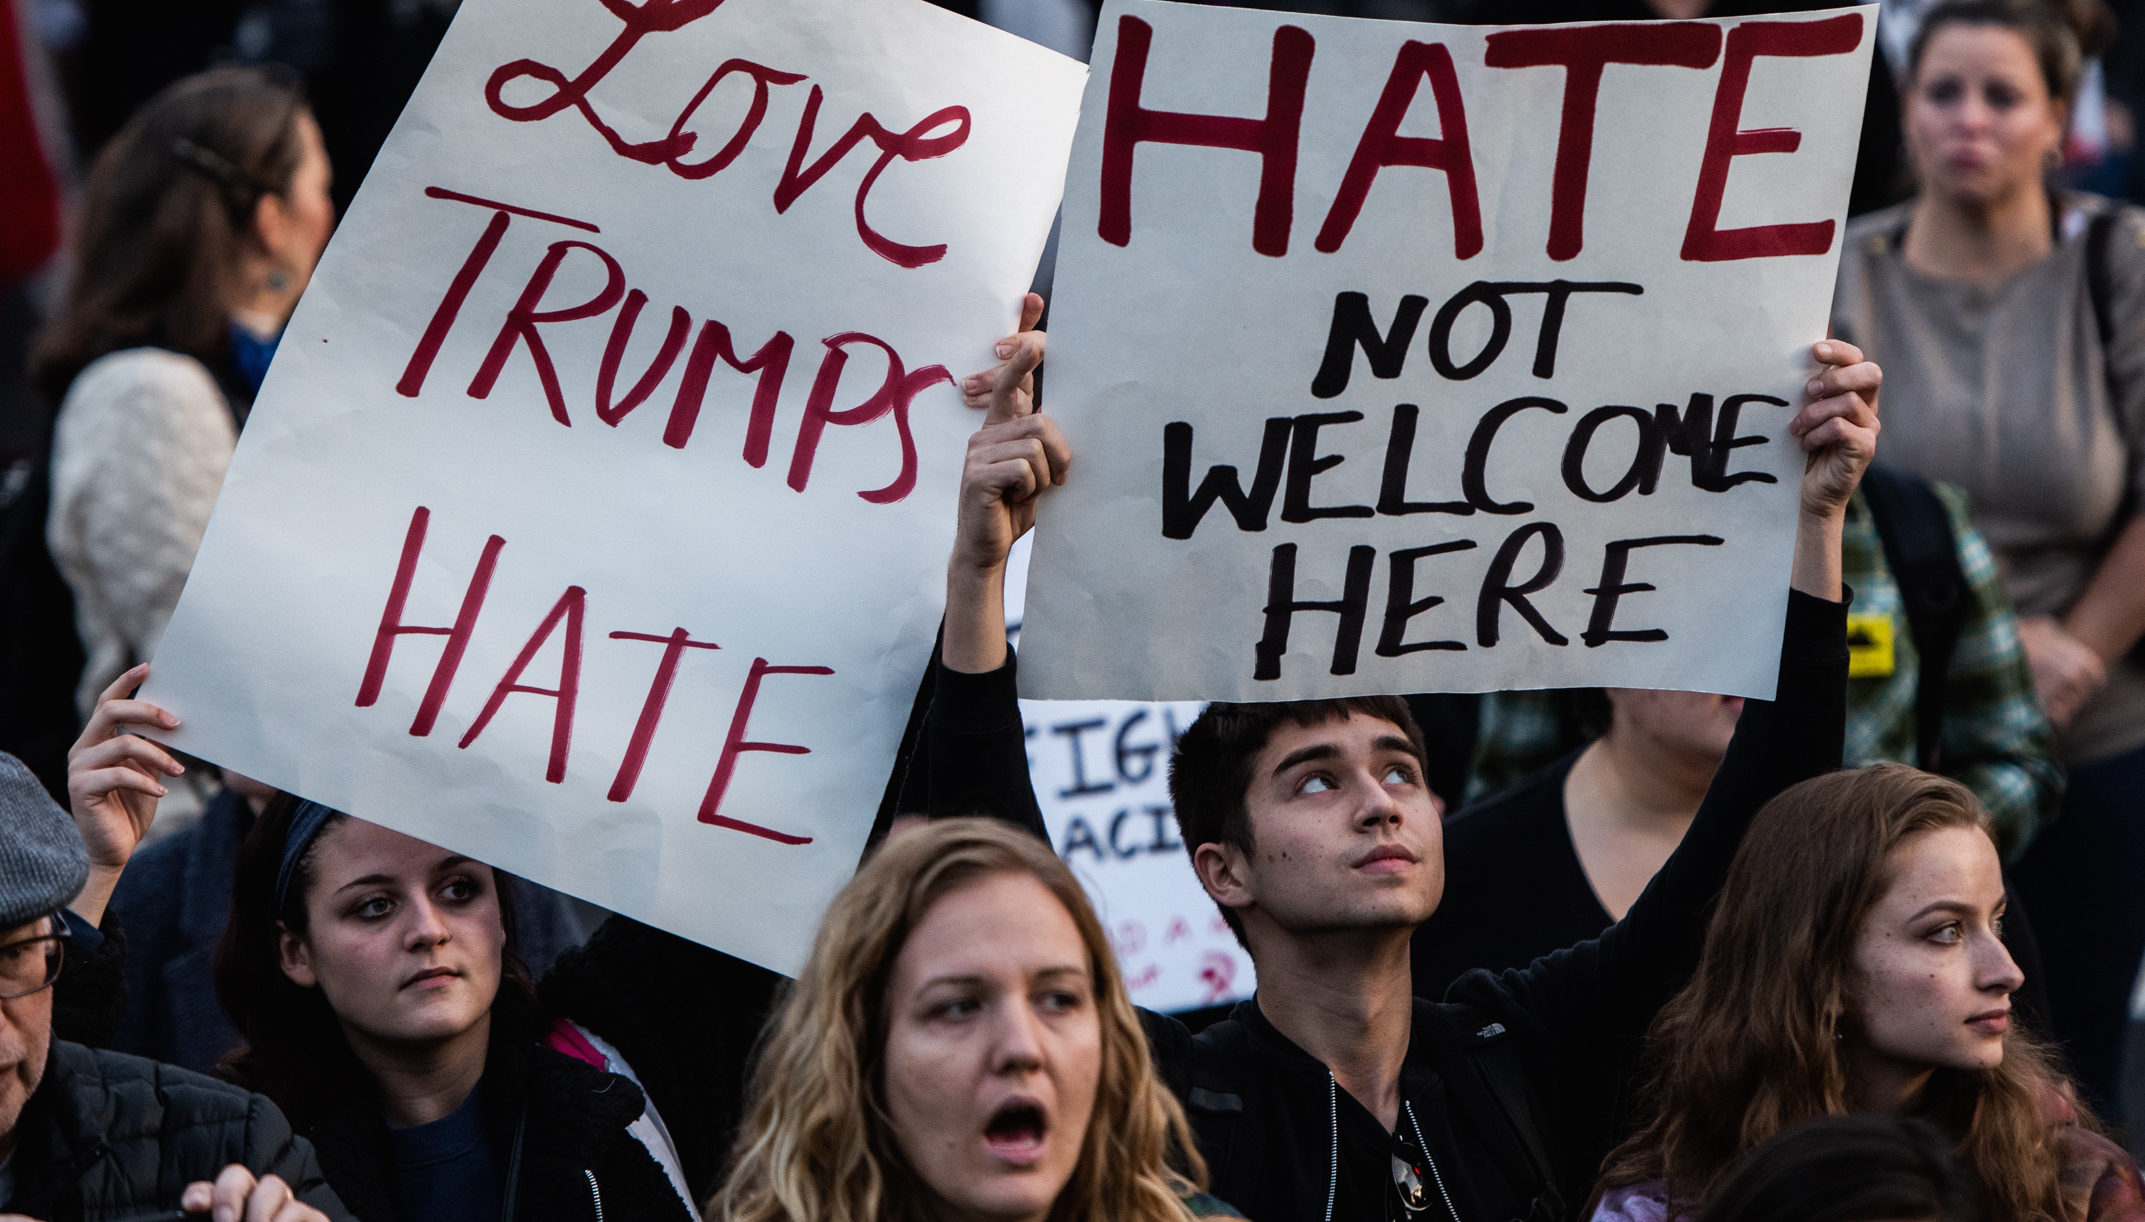 Main image to represent hate crimes rising in the USA